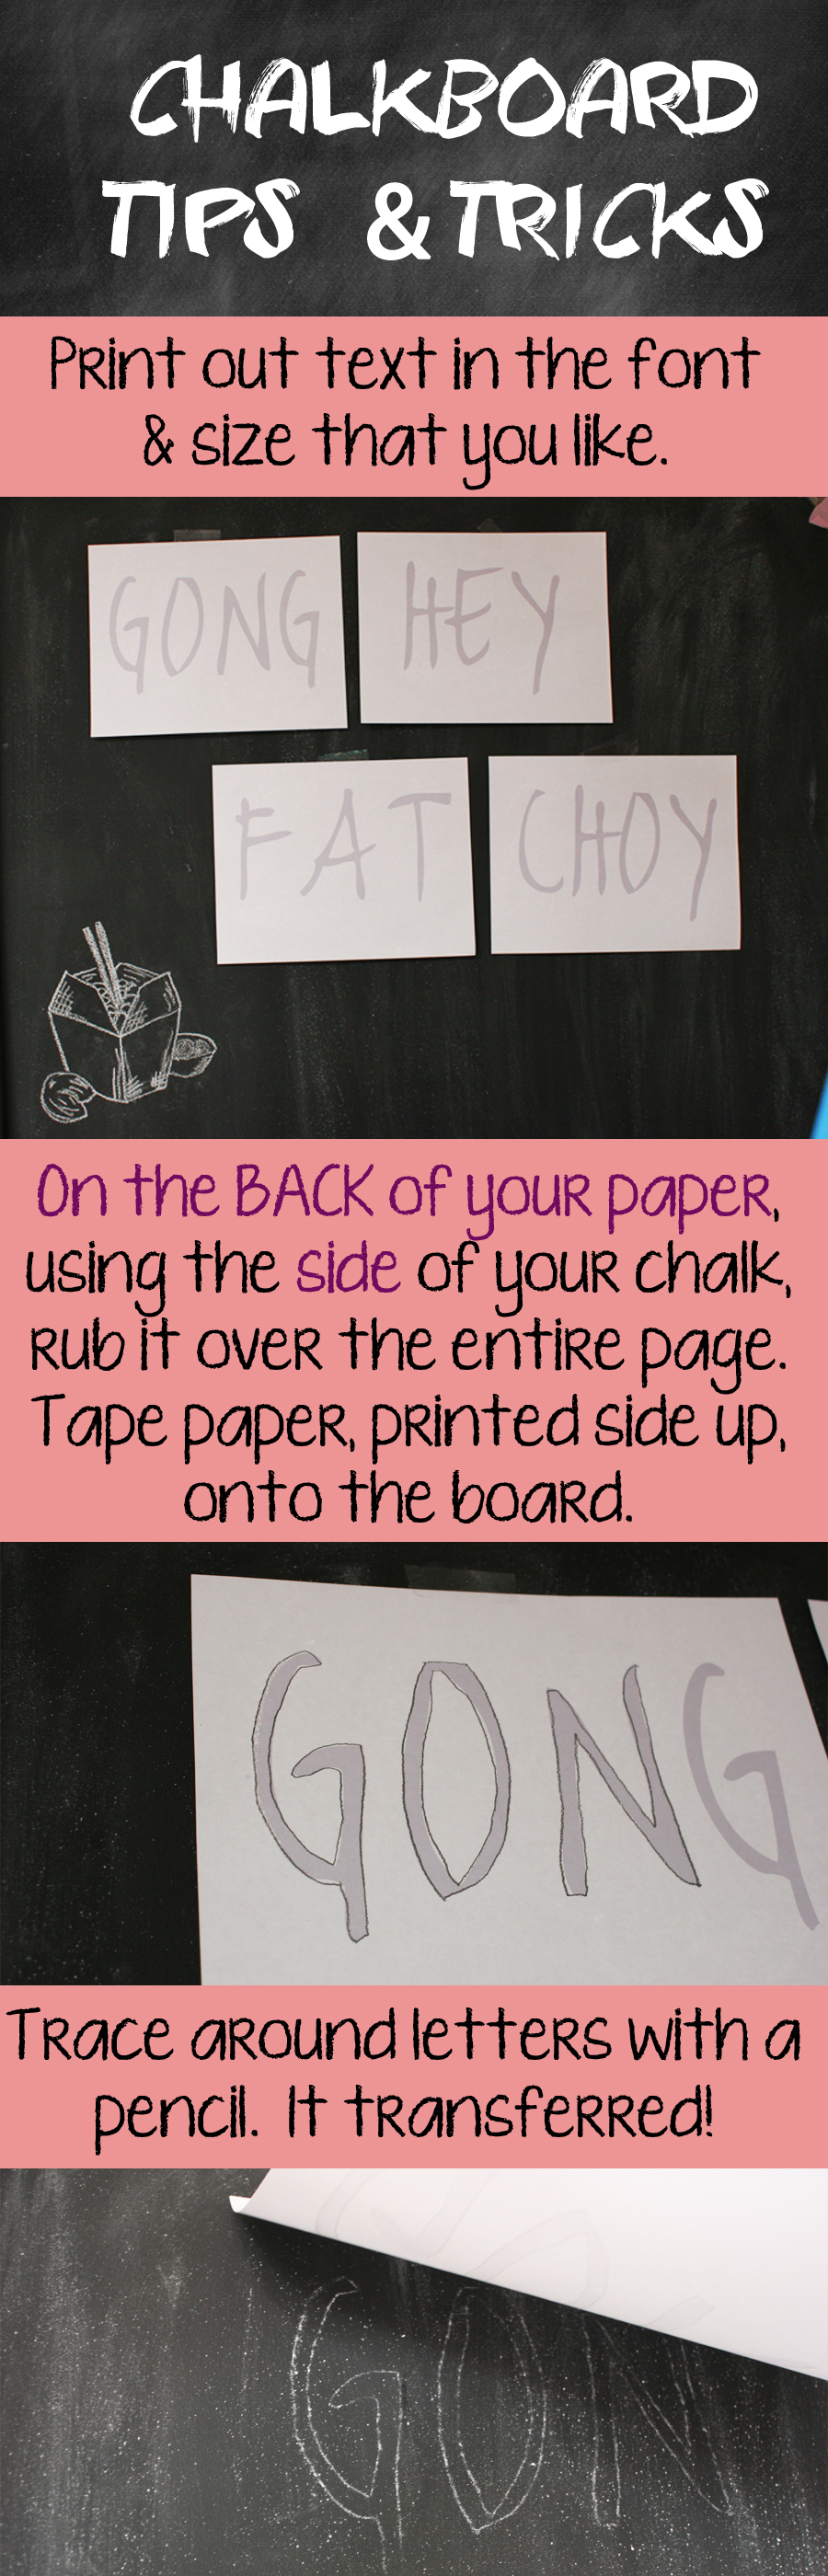 chalkboard tips and tricks